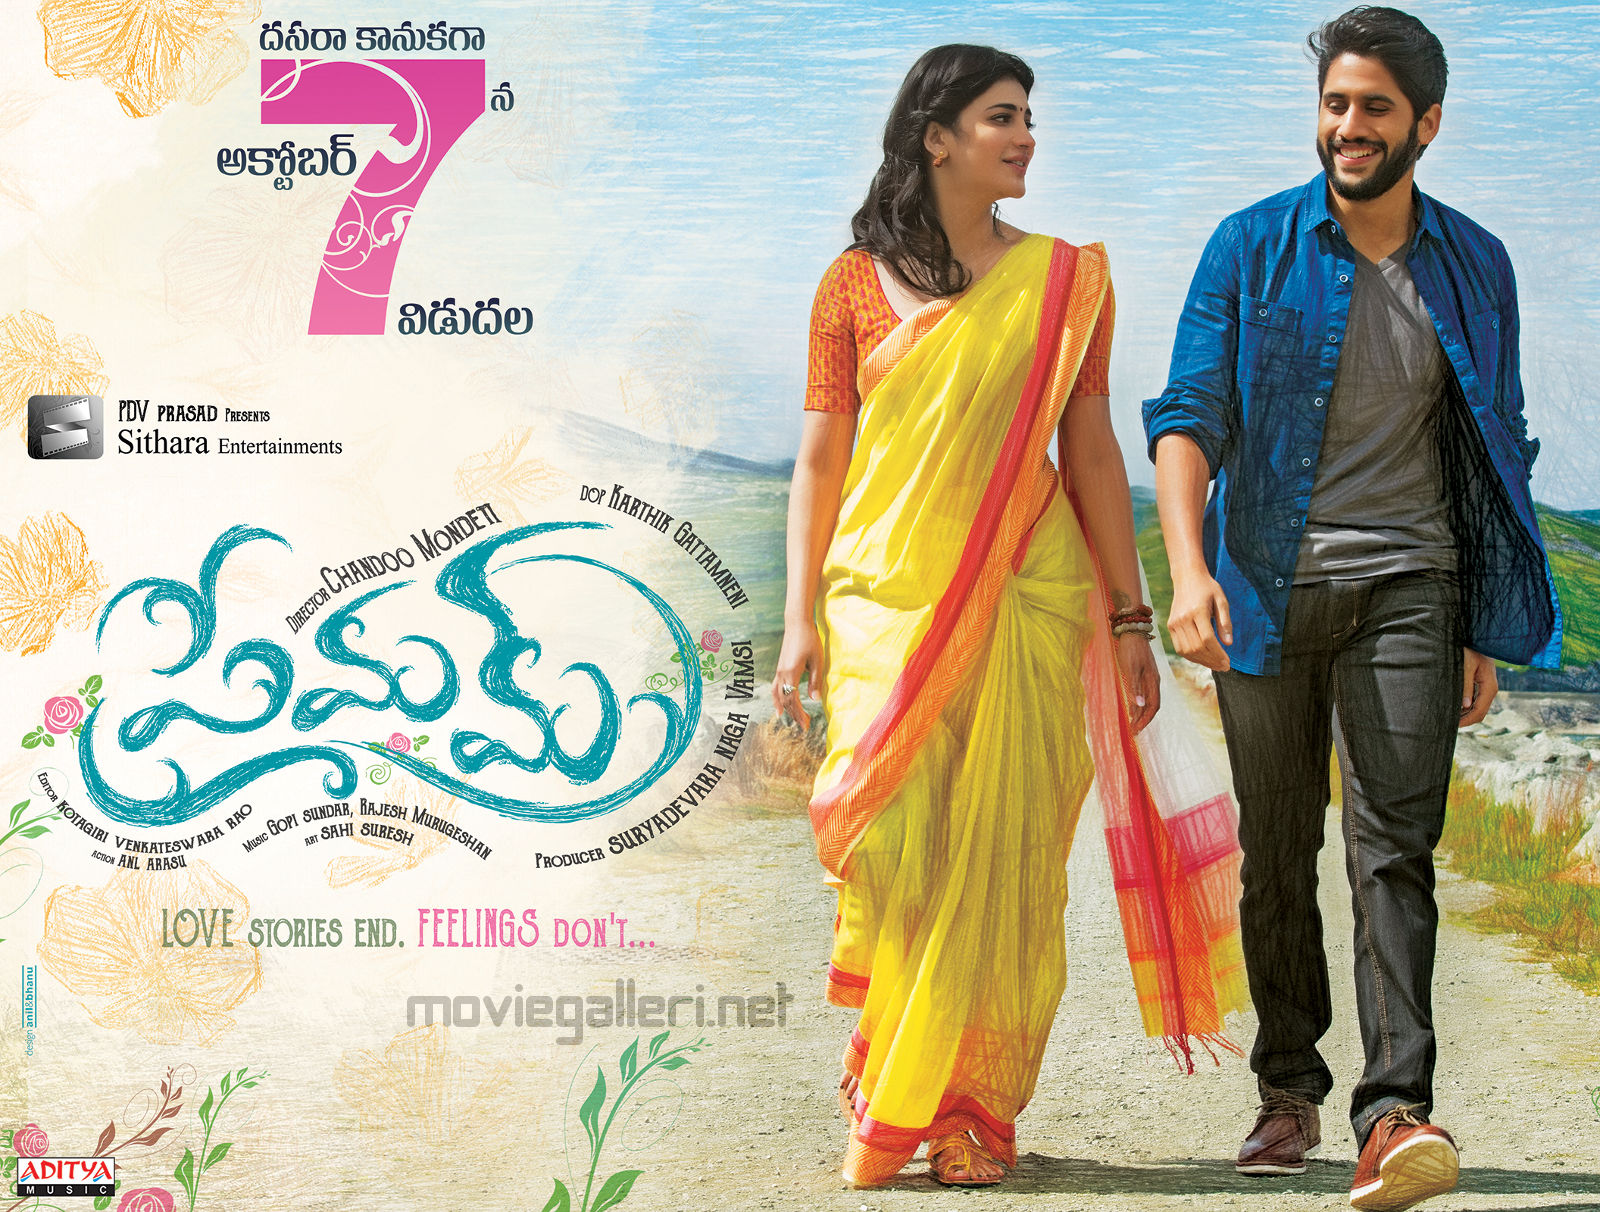 Shruti Hassan, Naga Chaitanya in Premam Movie Release on Oct 7th Posters